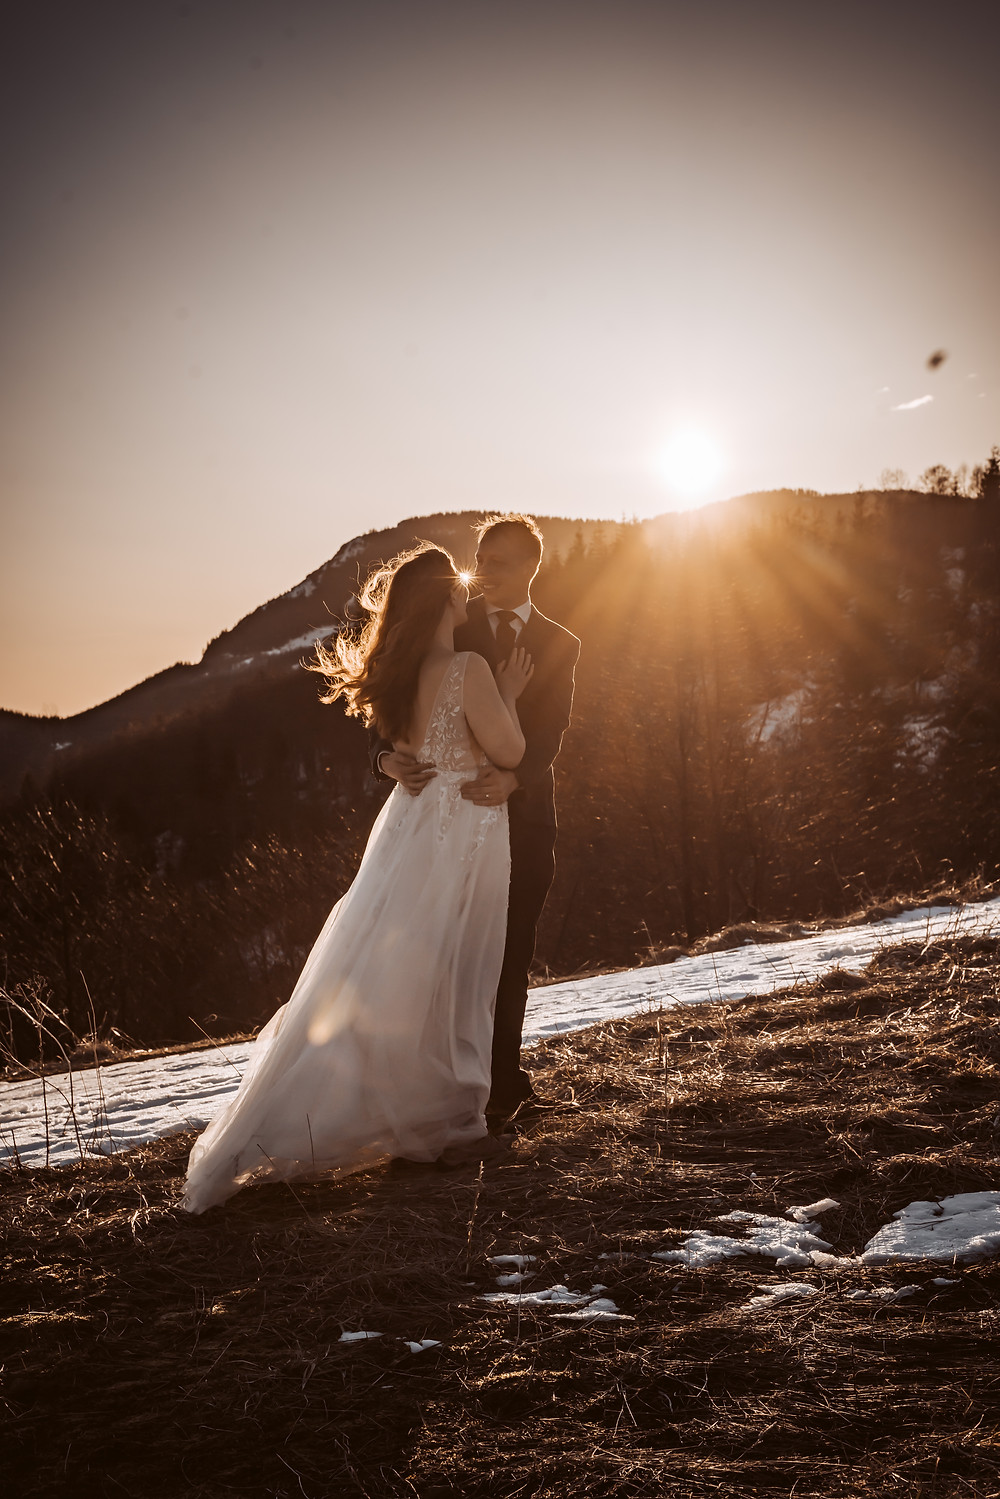 A bride and groom standing in front of the sun going down holding each other in front of the mountain backdrop in Mt. St. Helens